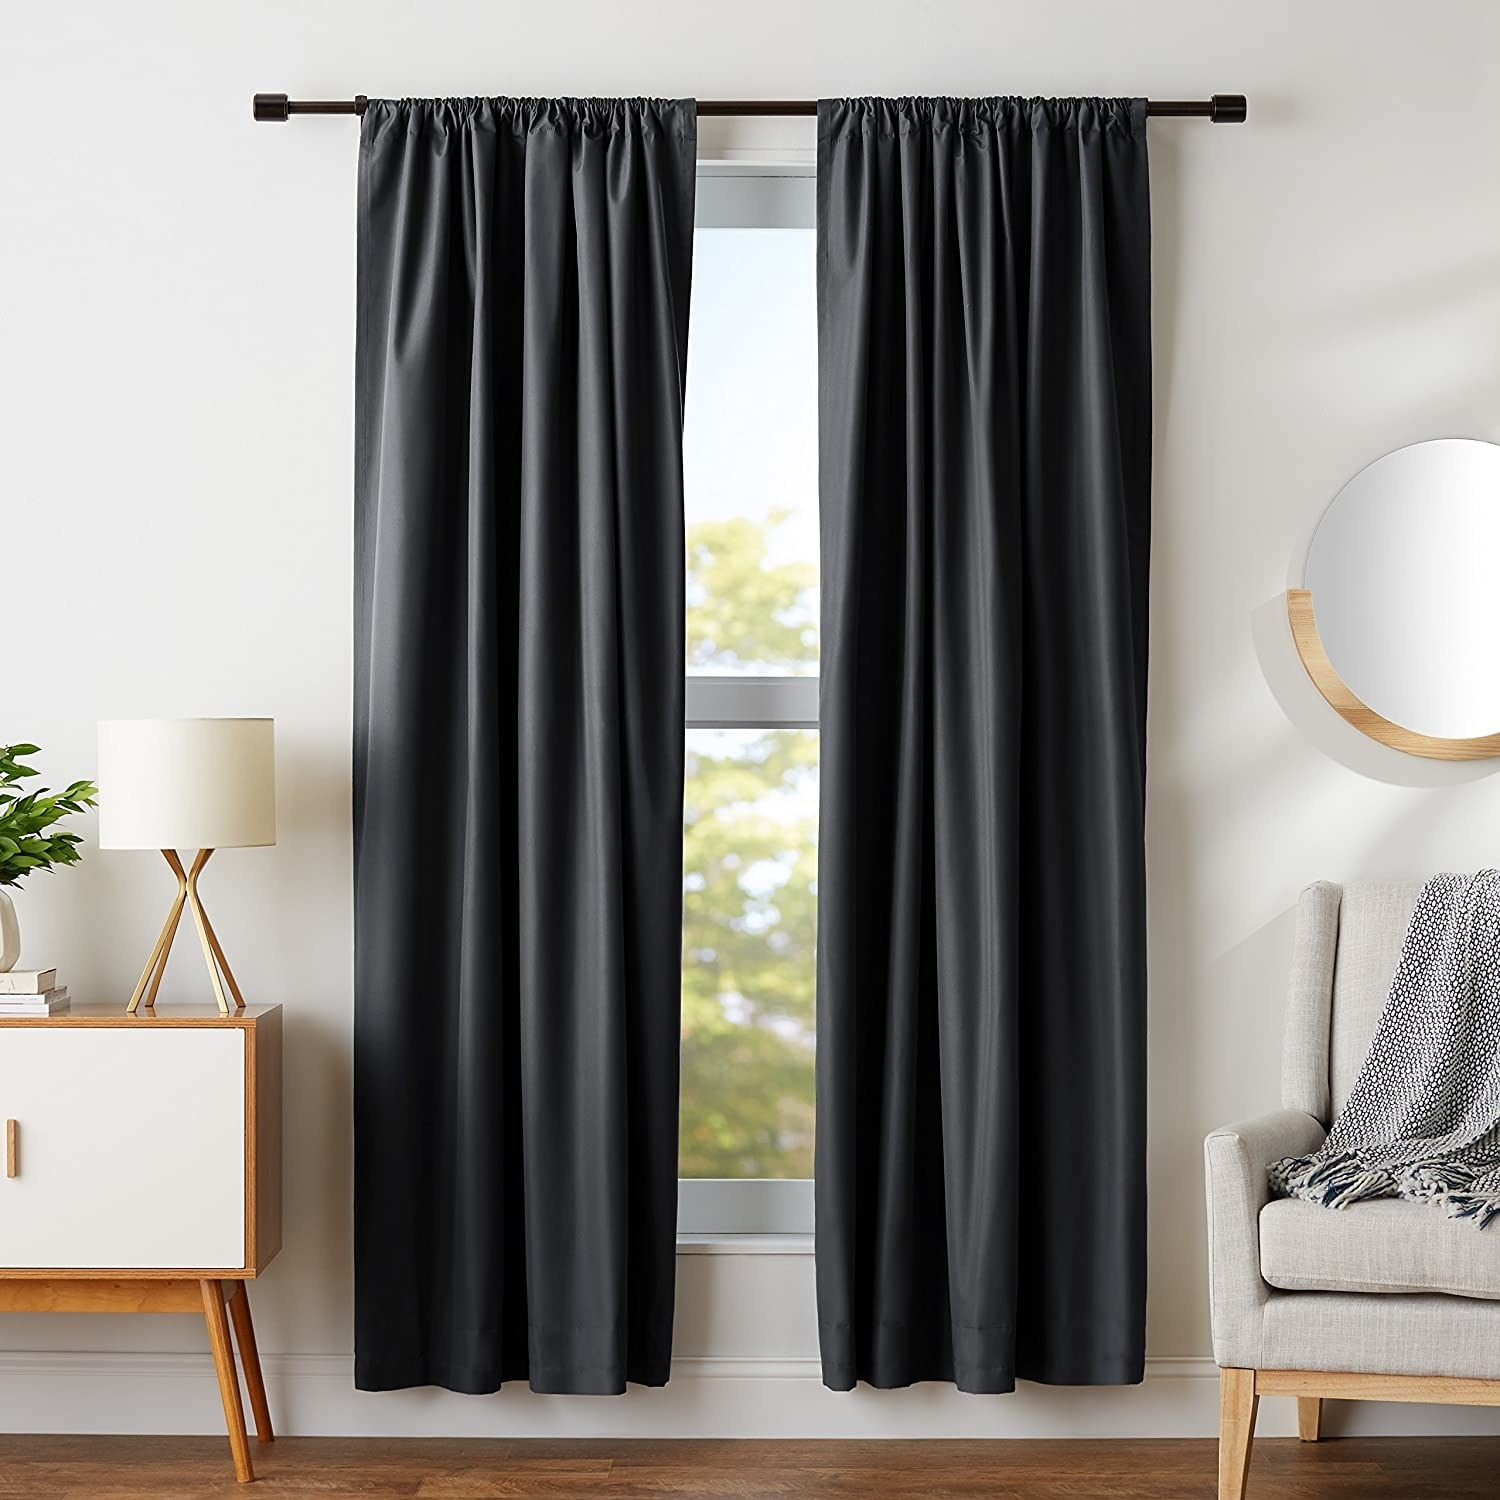 black blackout curtains hanging up on a window